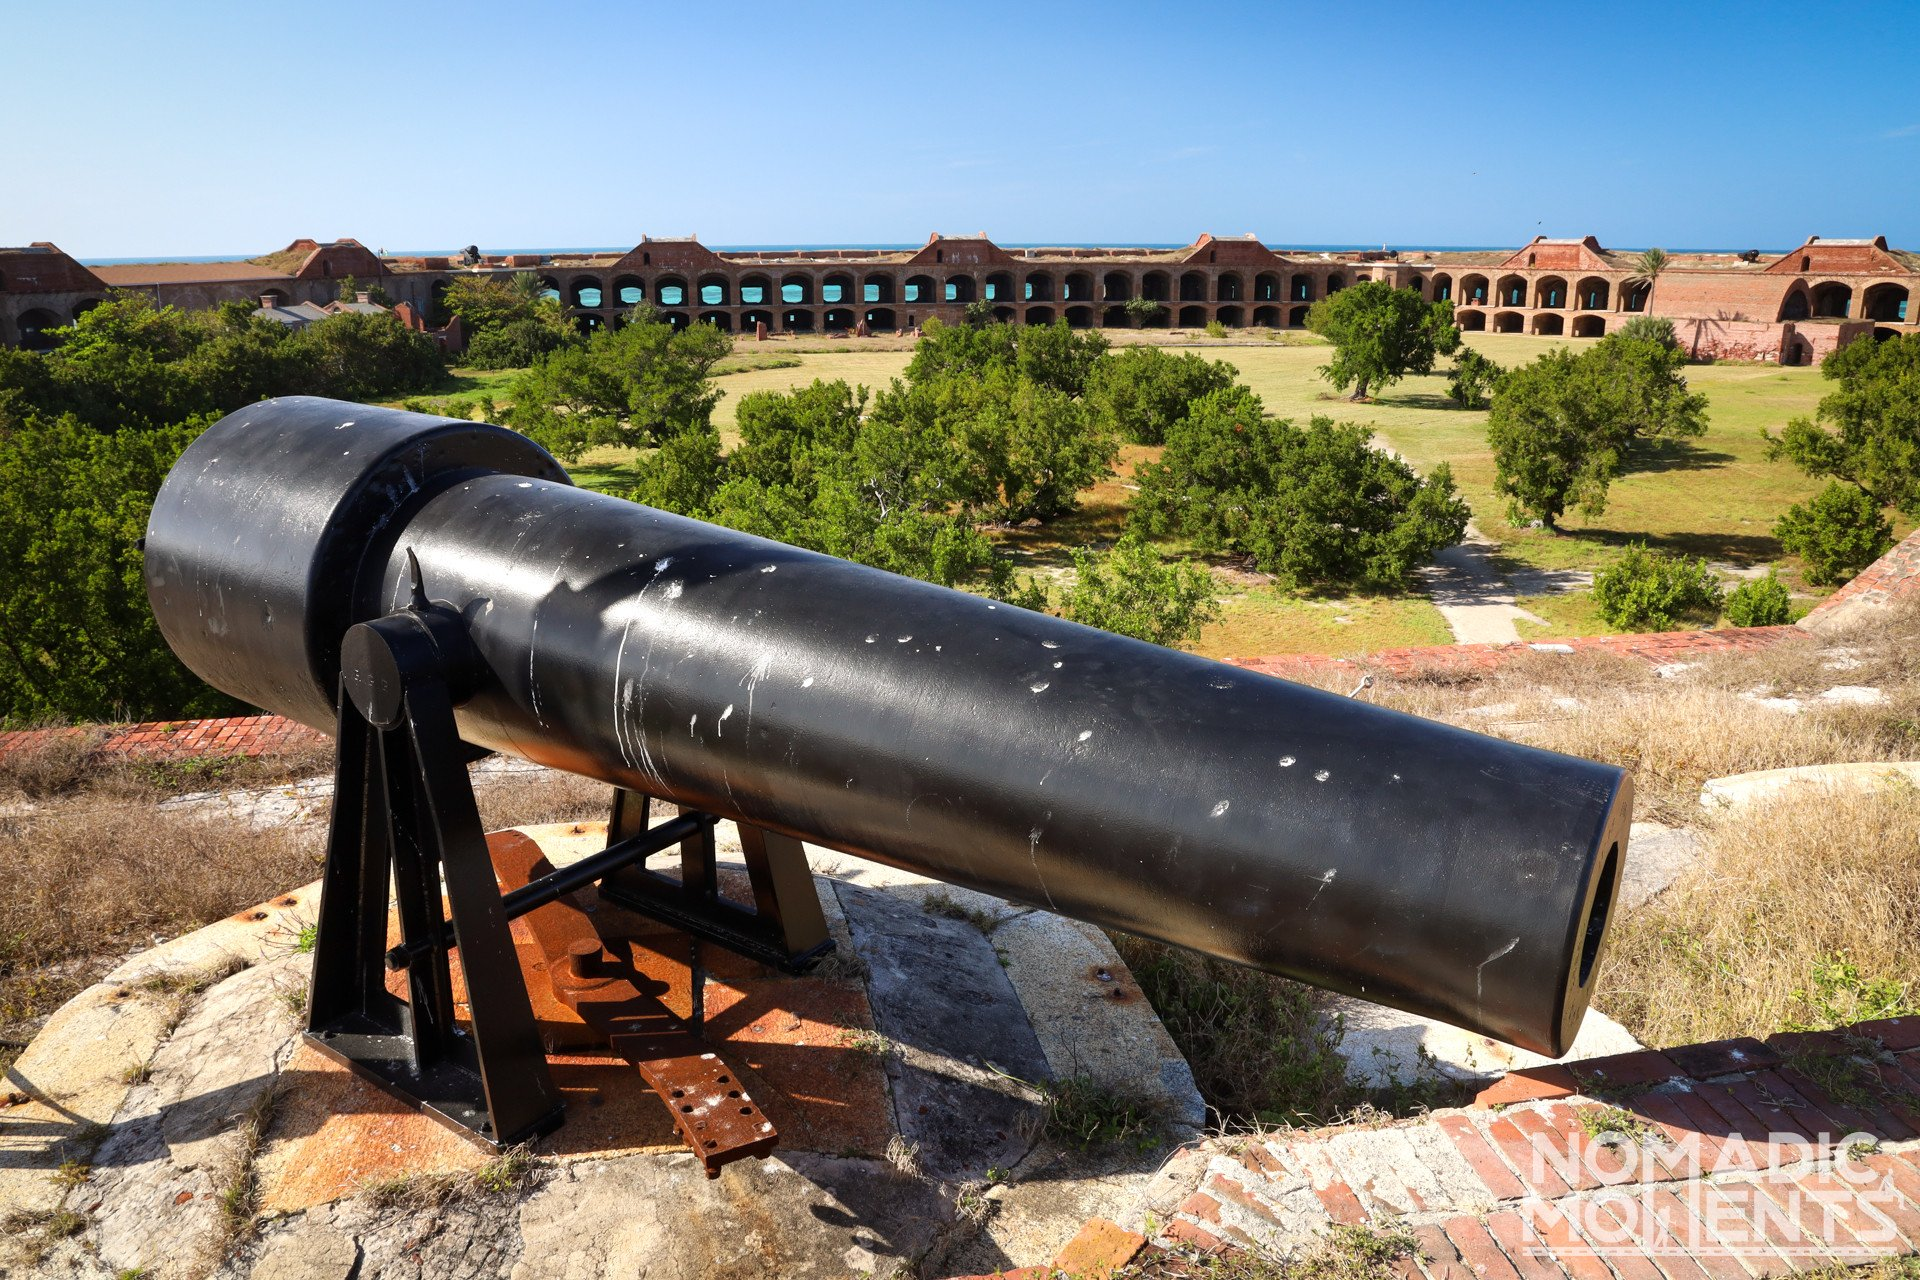 Dry Tortugas Cannon